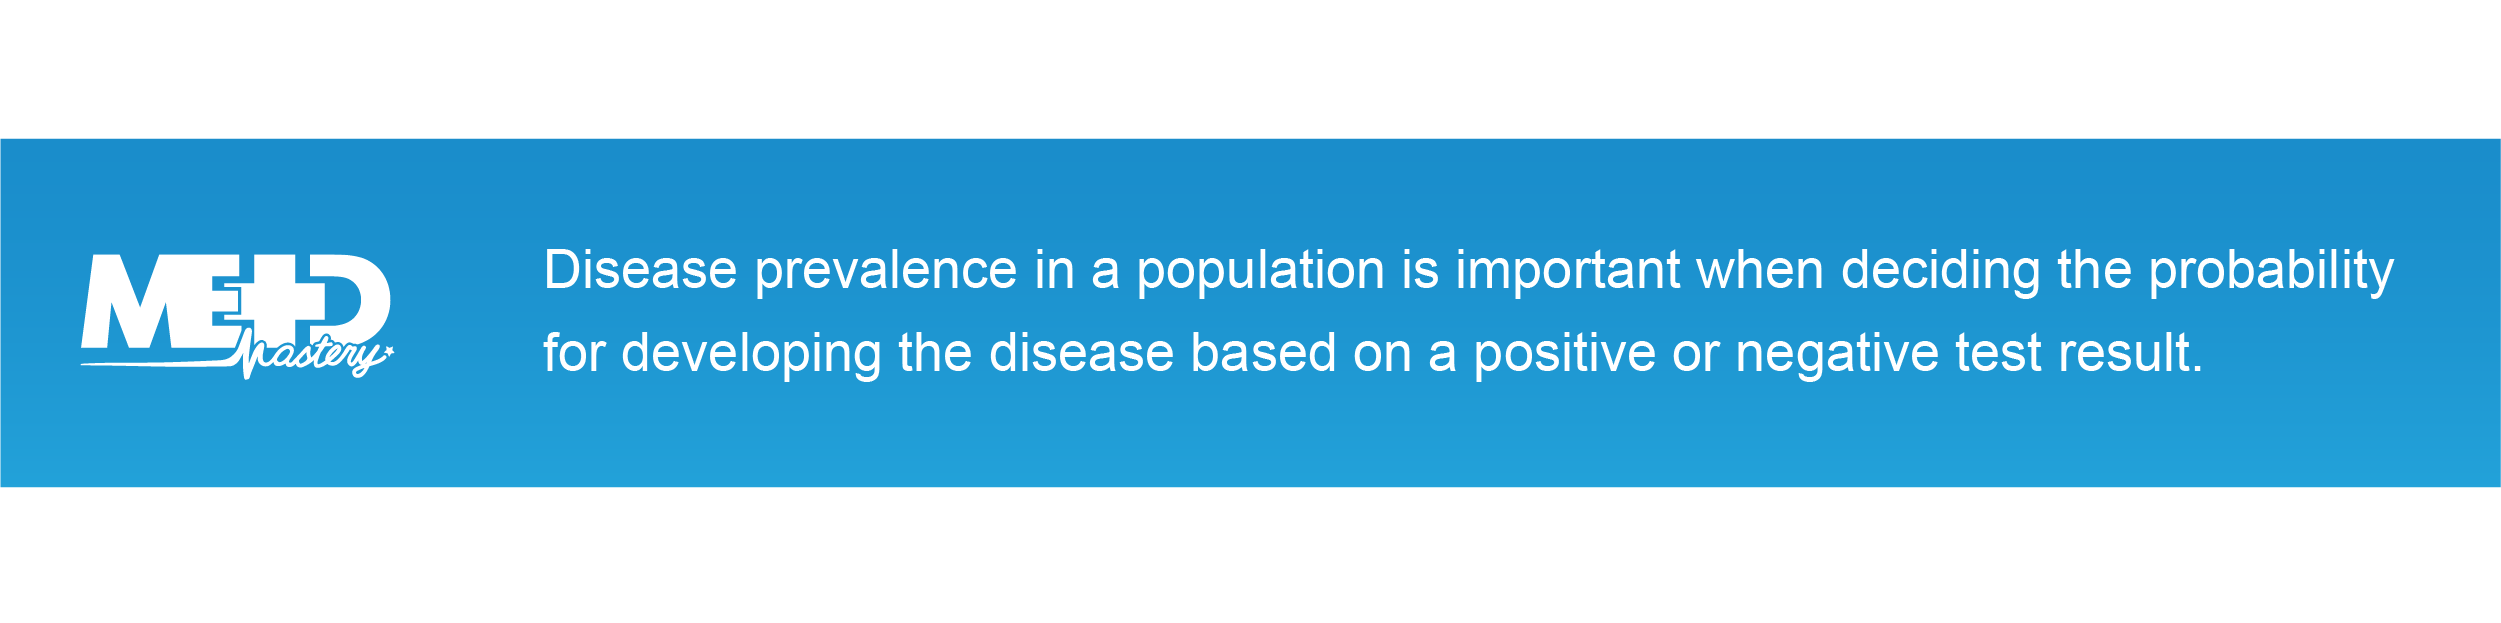 Disease prevalence in a population is important when deciding the probability for developing the disease based on a positive or negative test result.